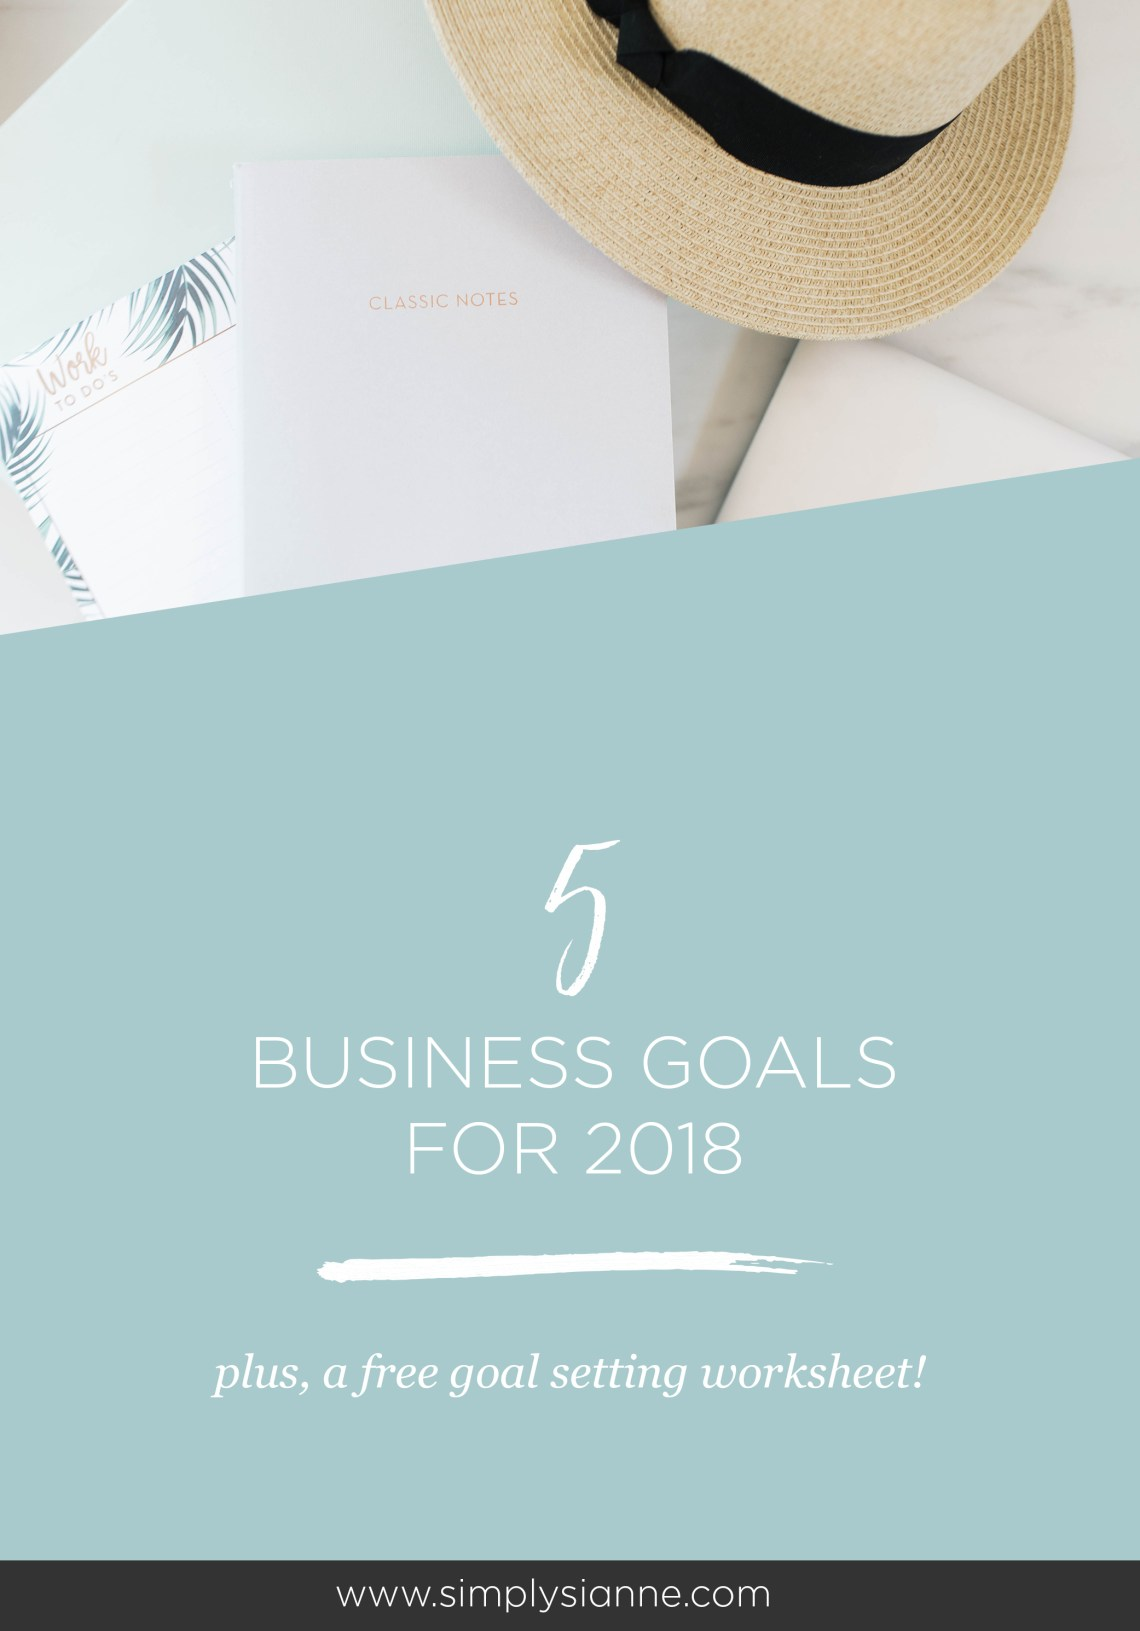 I'm declaring my business goals for 2018, right here, so I can silence the little voice in my head, and get after my dreams. I've got 5 lofty business goals this year, and I am putting it out here to help keep me accountable. Read my 5 biz goals for the new year here.